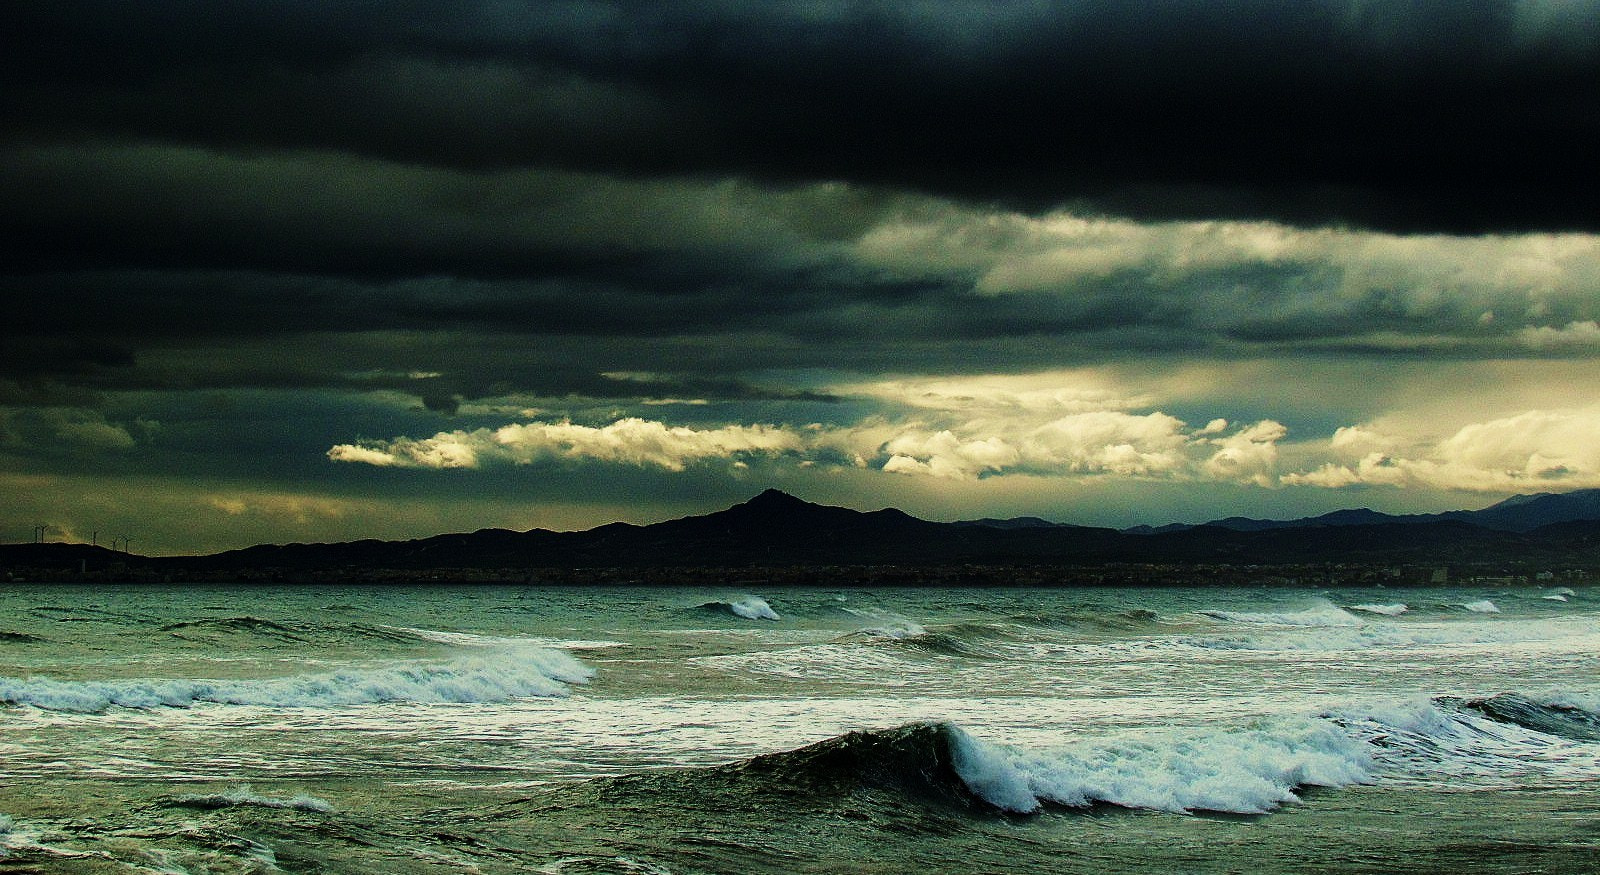 Photograph storm is coming by JuicyColors on 500px